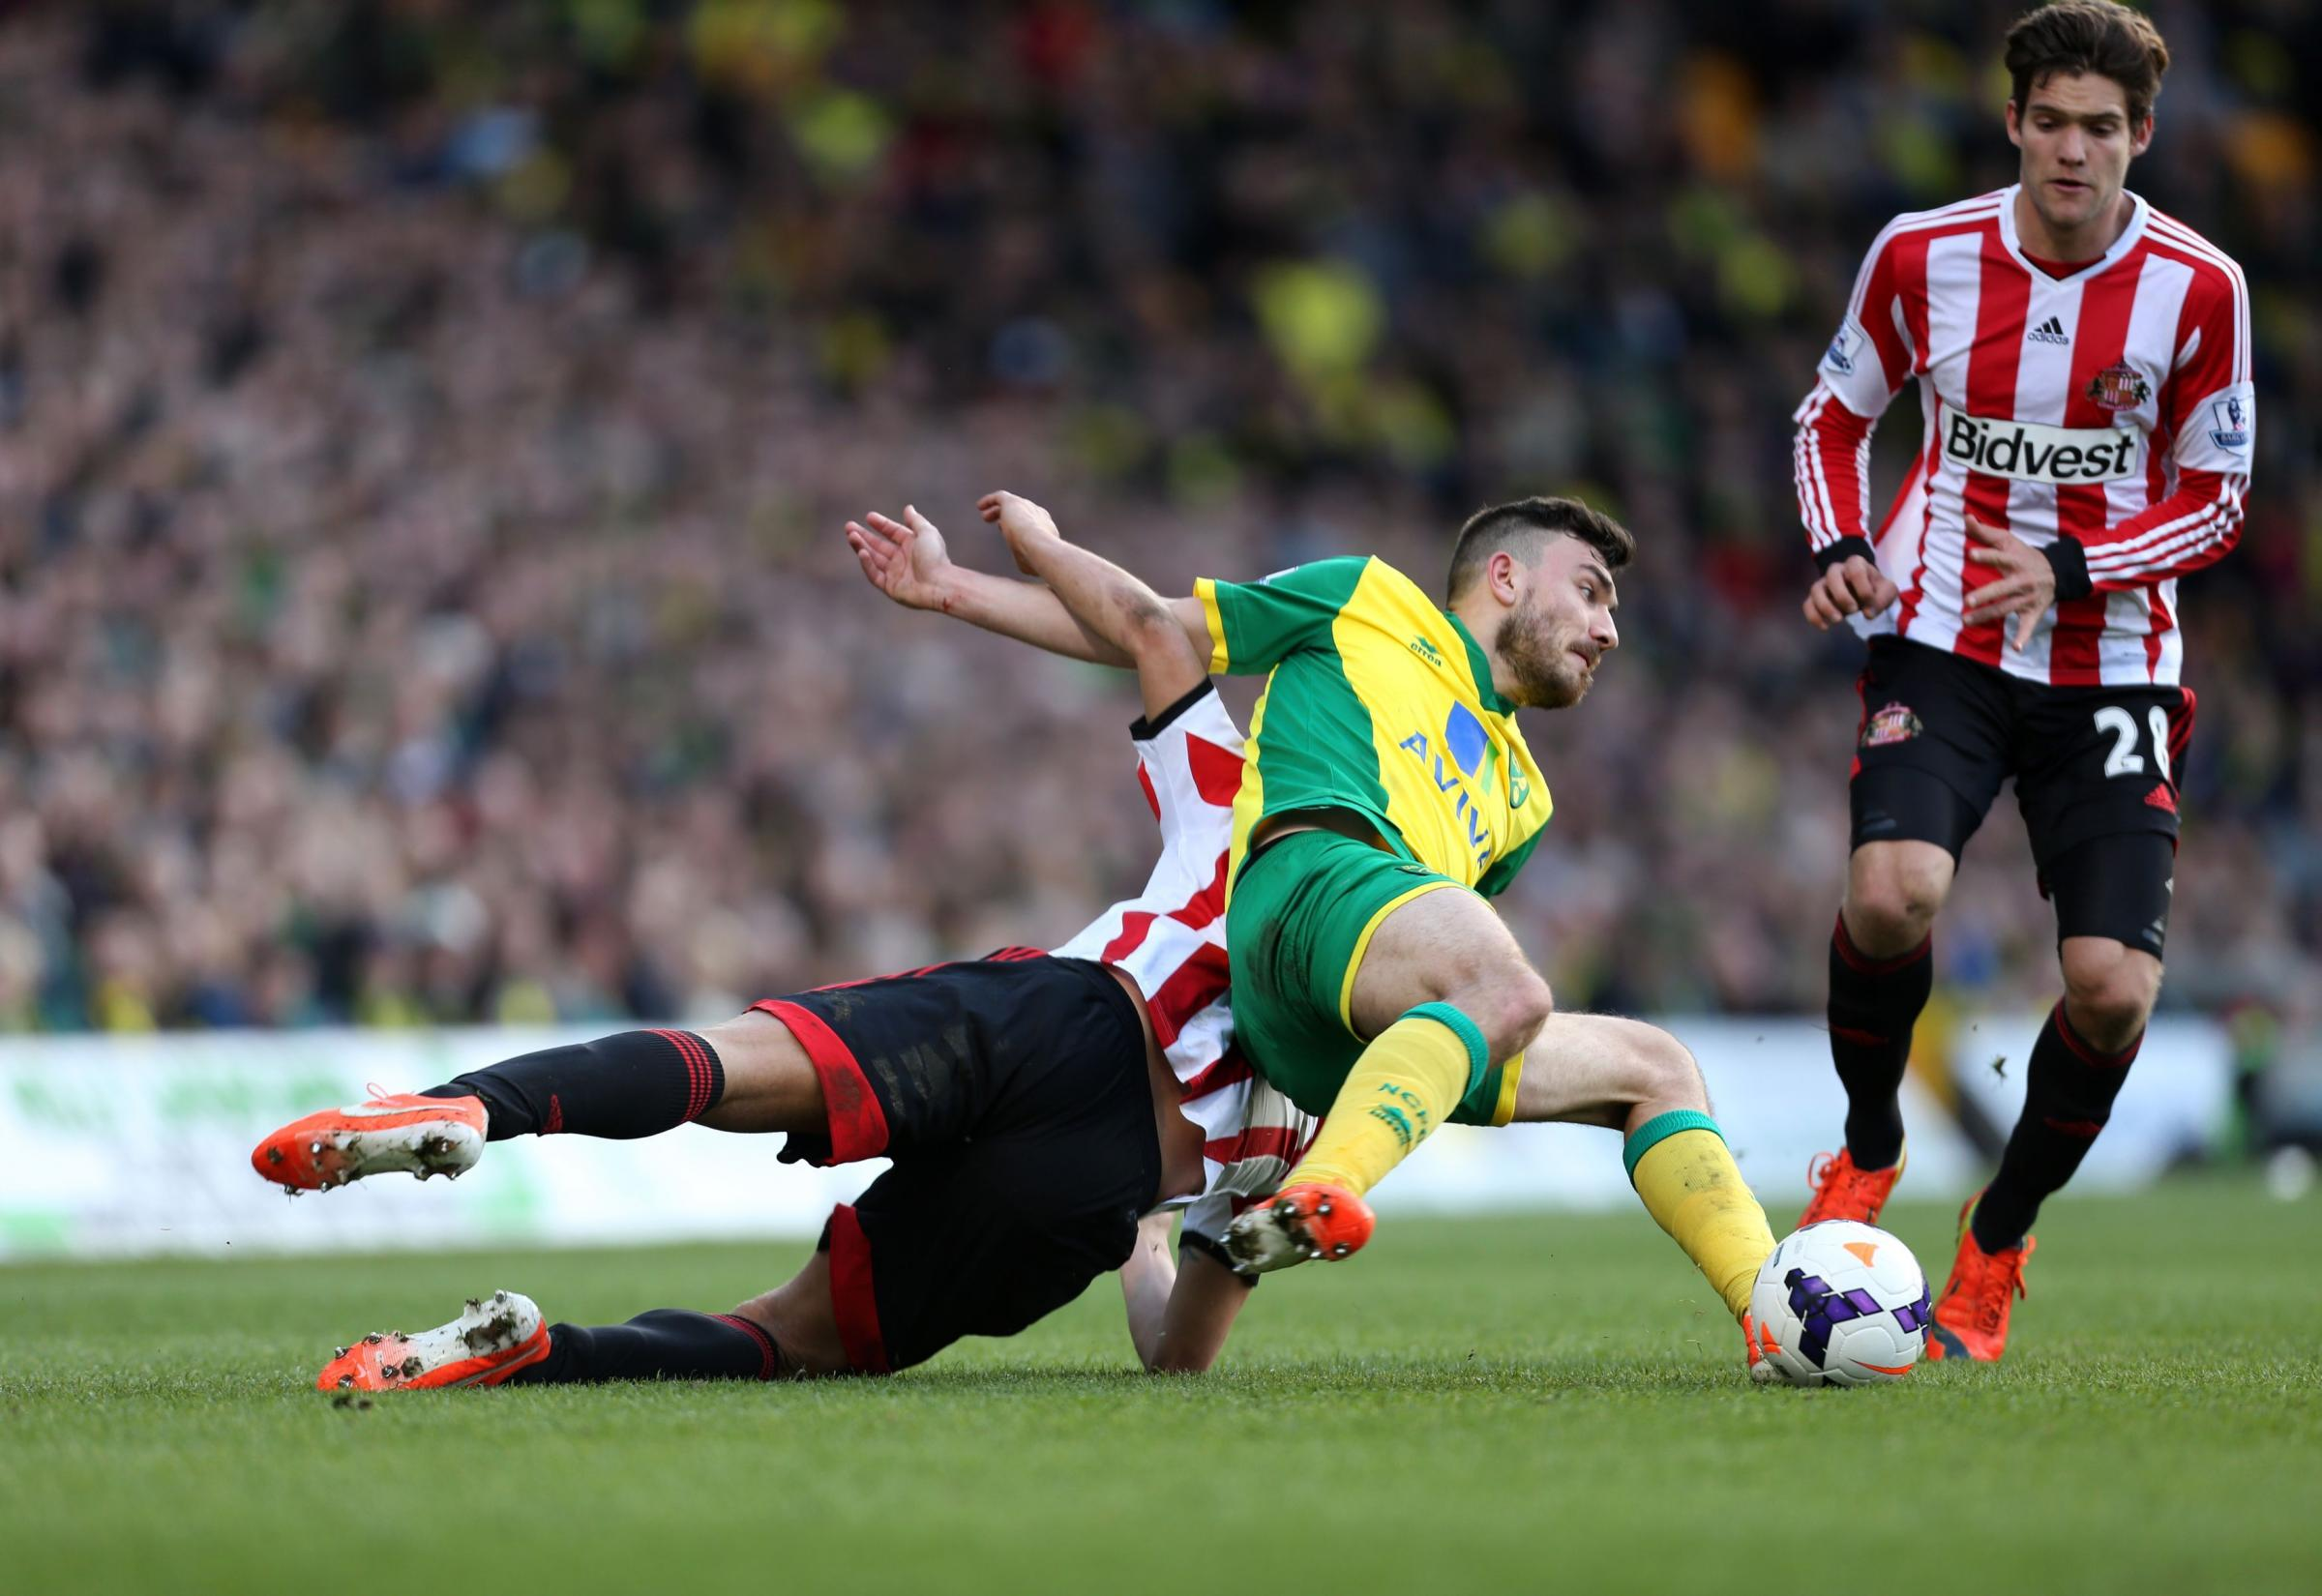 TAKING A TUMBLE: Sunderland's Wes Brown goes to ground in a clash with Robert Snodgrass